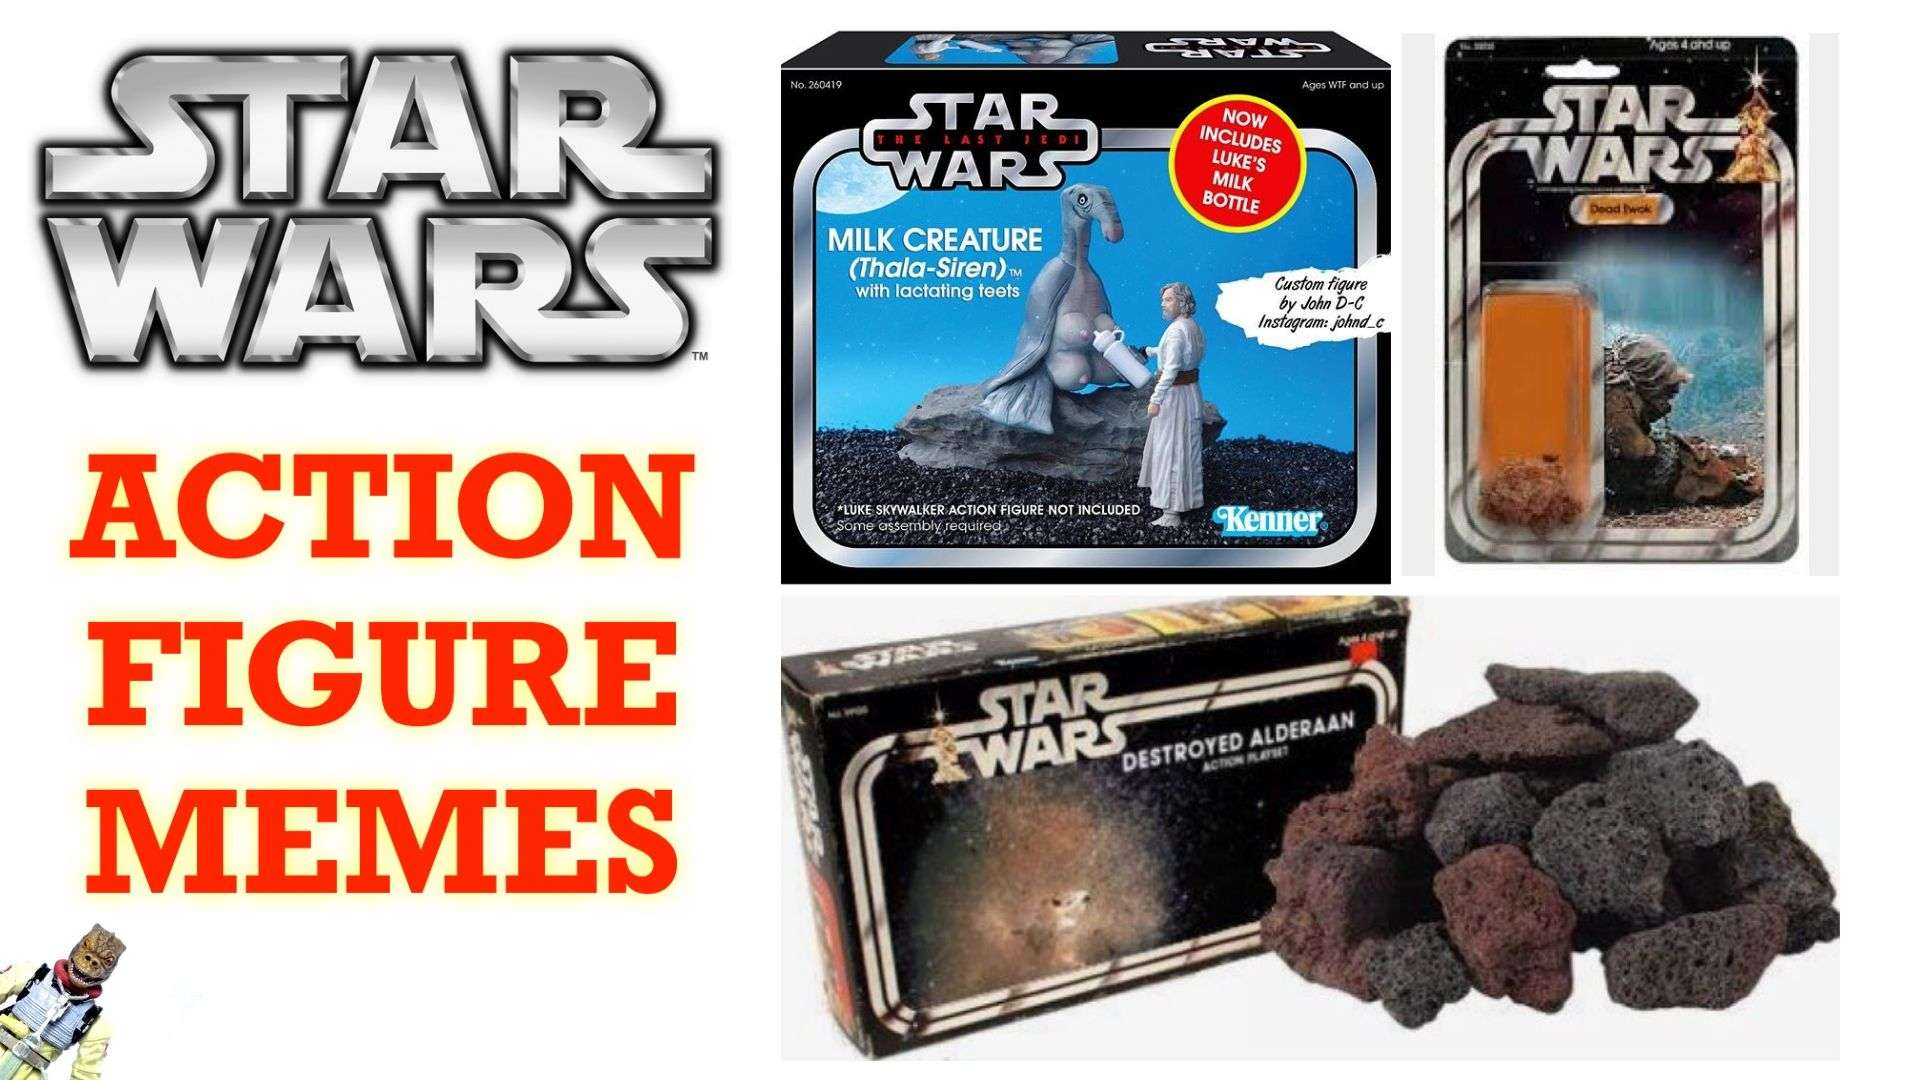 Funny Star Wars action figure memes